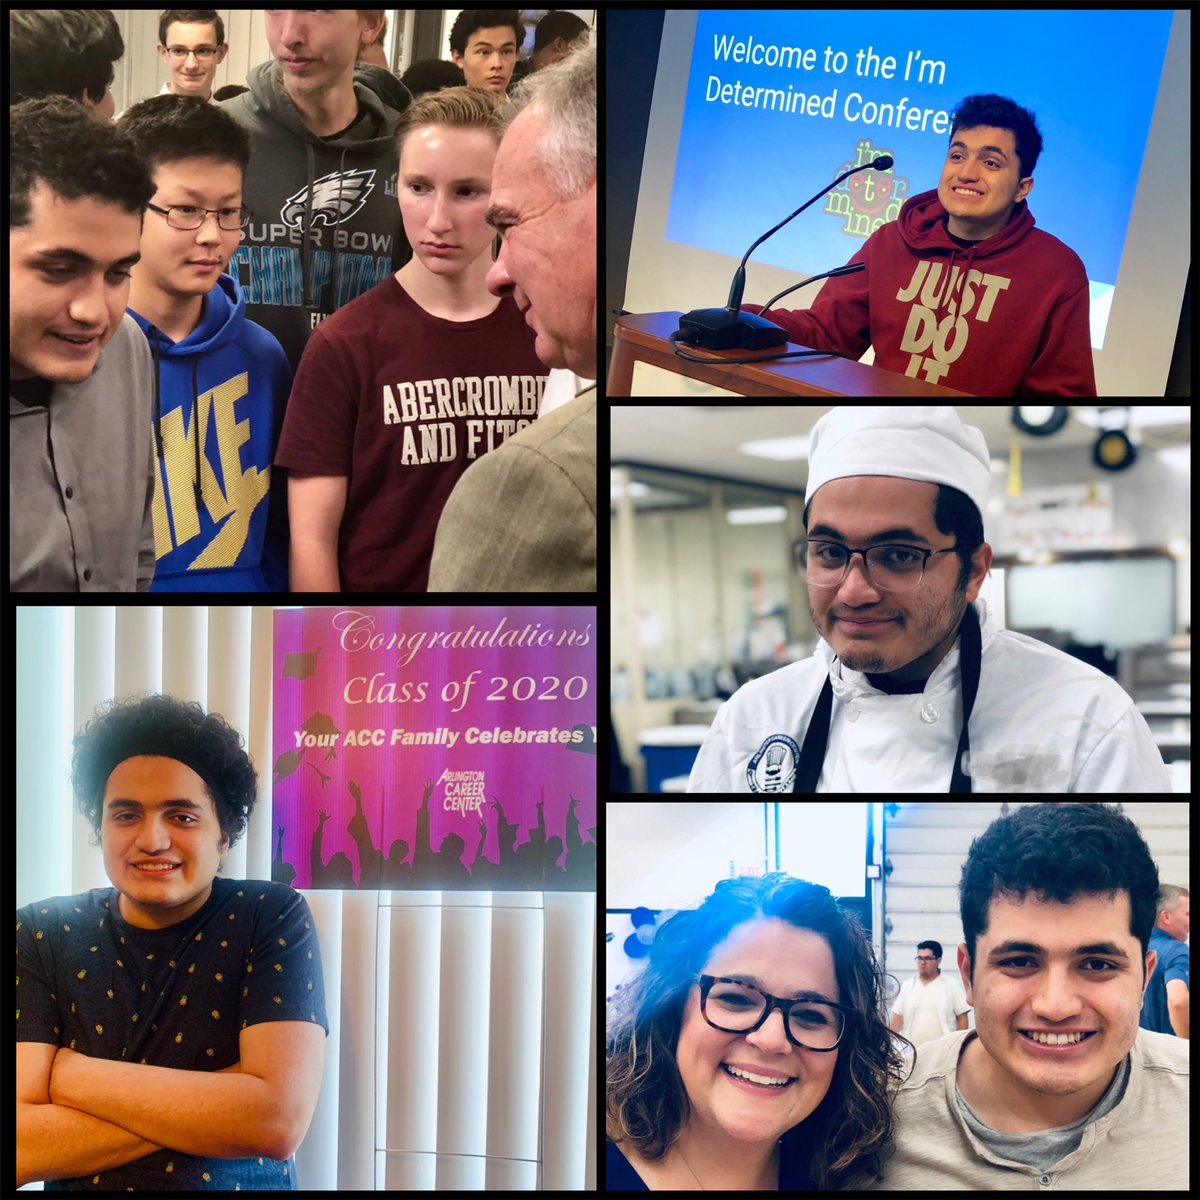 Please help us celebrate another one of our awesome 2020 PEP graduates, Javier! We will miss him so much & wish him the very best as he begins classes <a target='_blank' href='http://twitter.com/NOVAcommcollege'>@NOVAcommcollege</a> in the Fall!  <a target='_blank' href='http://twitter.com/Margaretchungcc'>@Margaretchungcc</a> <a target='_blank' href='http://twitter.com/APSCareerCenter'>@APSCareerCenter</a> <a target='_blank' href='http://twitter.com/timkaine'>@timkaine</a> <a target='_blank' href='http://twitter.com/ACC_Partners'>@ACC_Partners</a> <a target='_blank' href='https://t.co/w7Q7hXoZ1n'>https://t.co/w7Q7hXoZ1n</a>